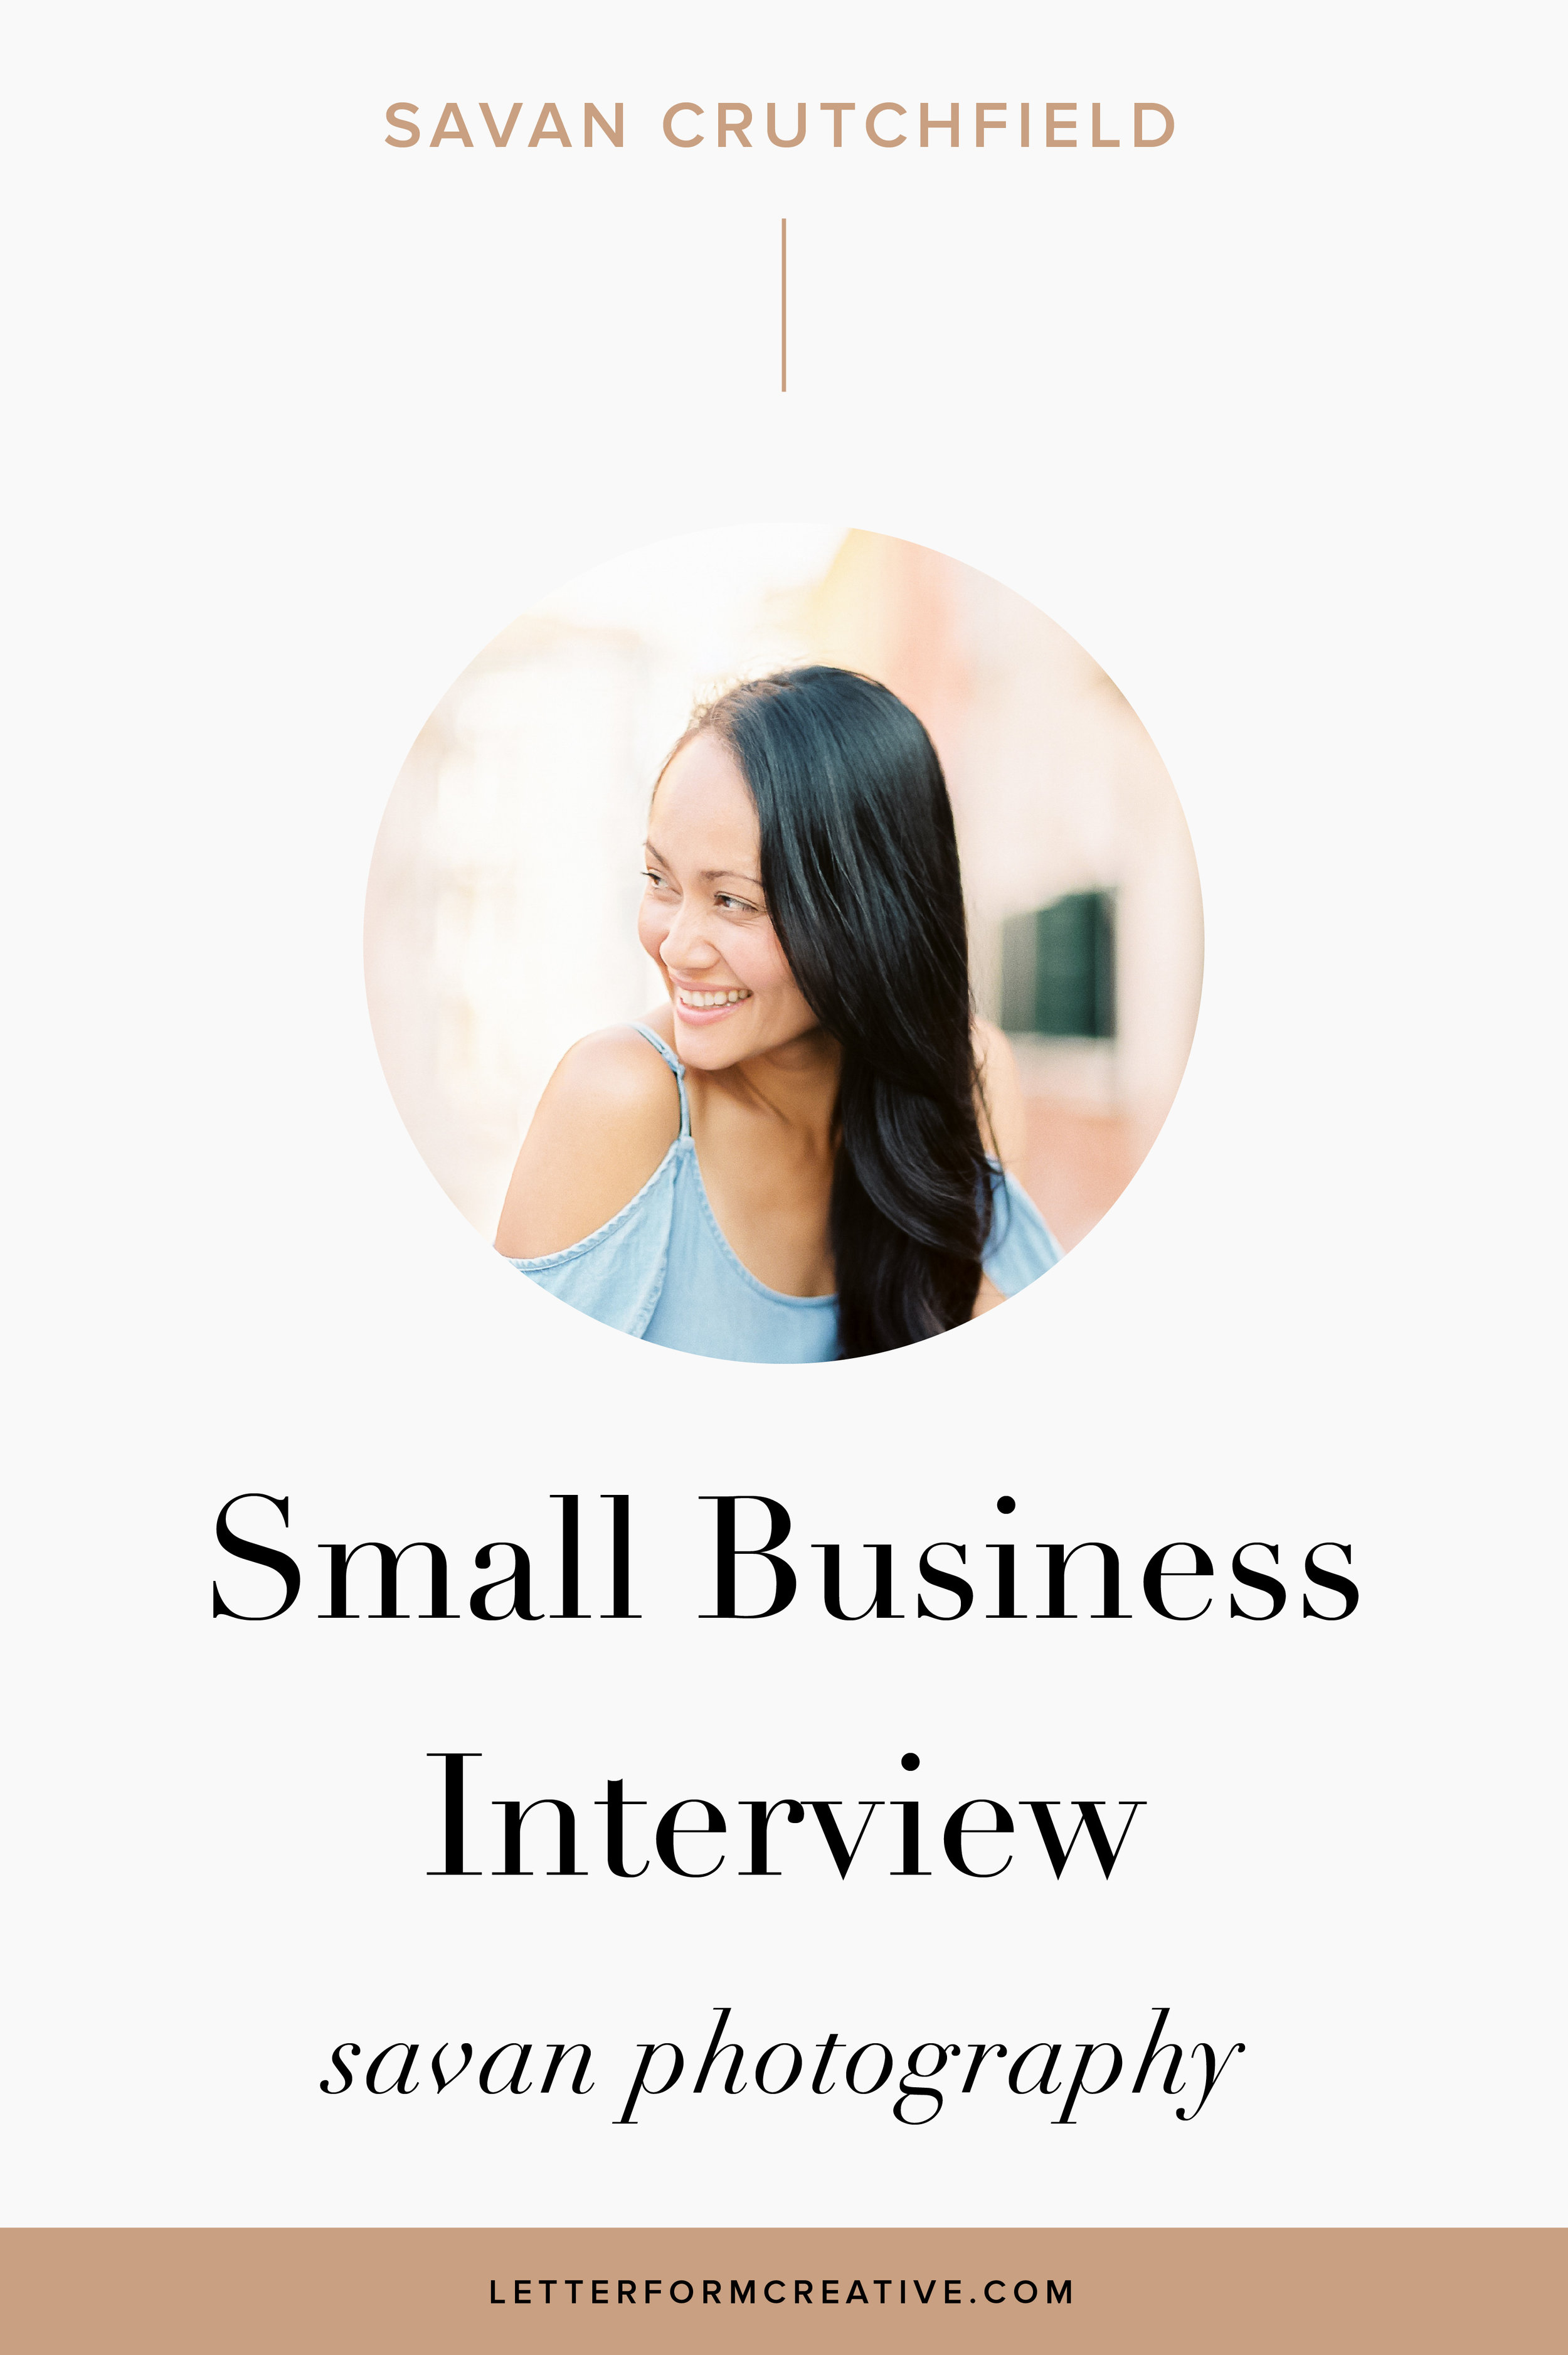 If you're a photographer starting your own business and are in need of some tips, check out this interview with small business owner, Savan Crutchfield. In it she gives some ideas and tips you can try out in your own business.from social media marketing to finding your style, Savan shares her insight. If you're a new entrepreneur, click through to read!